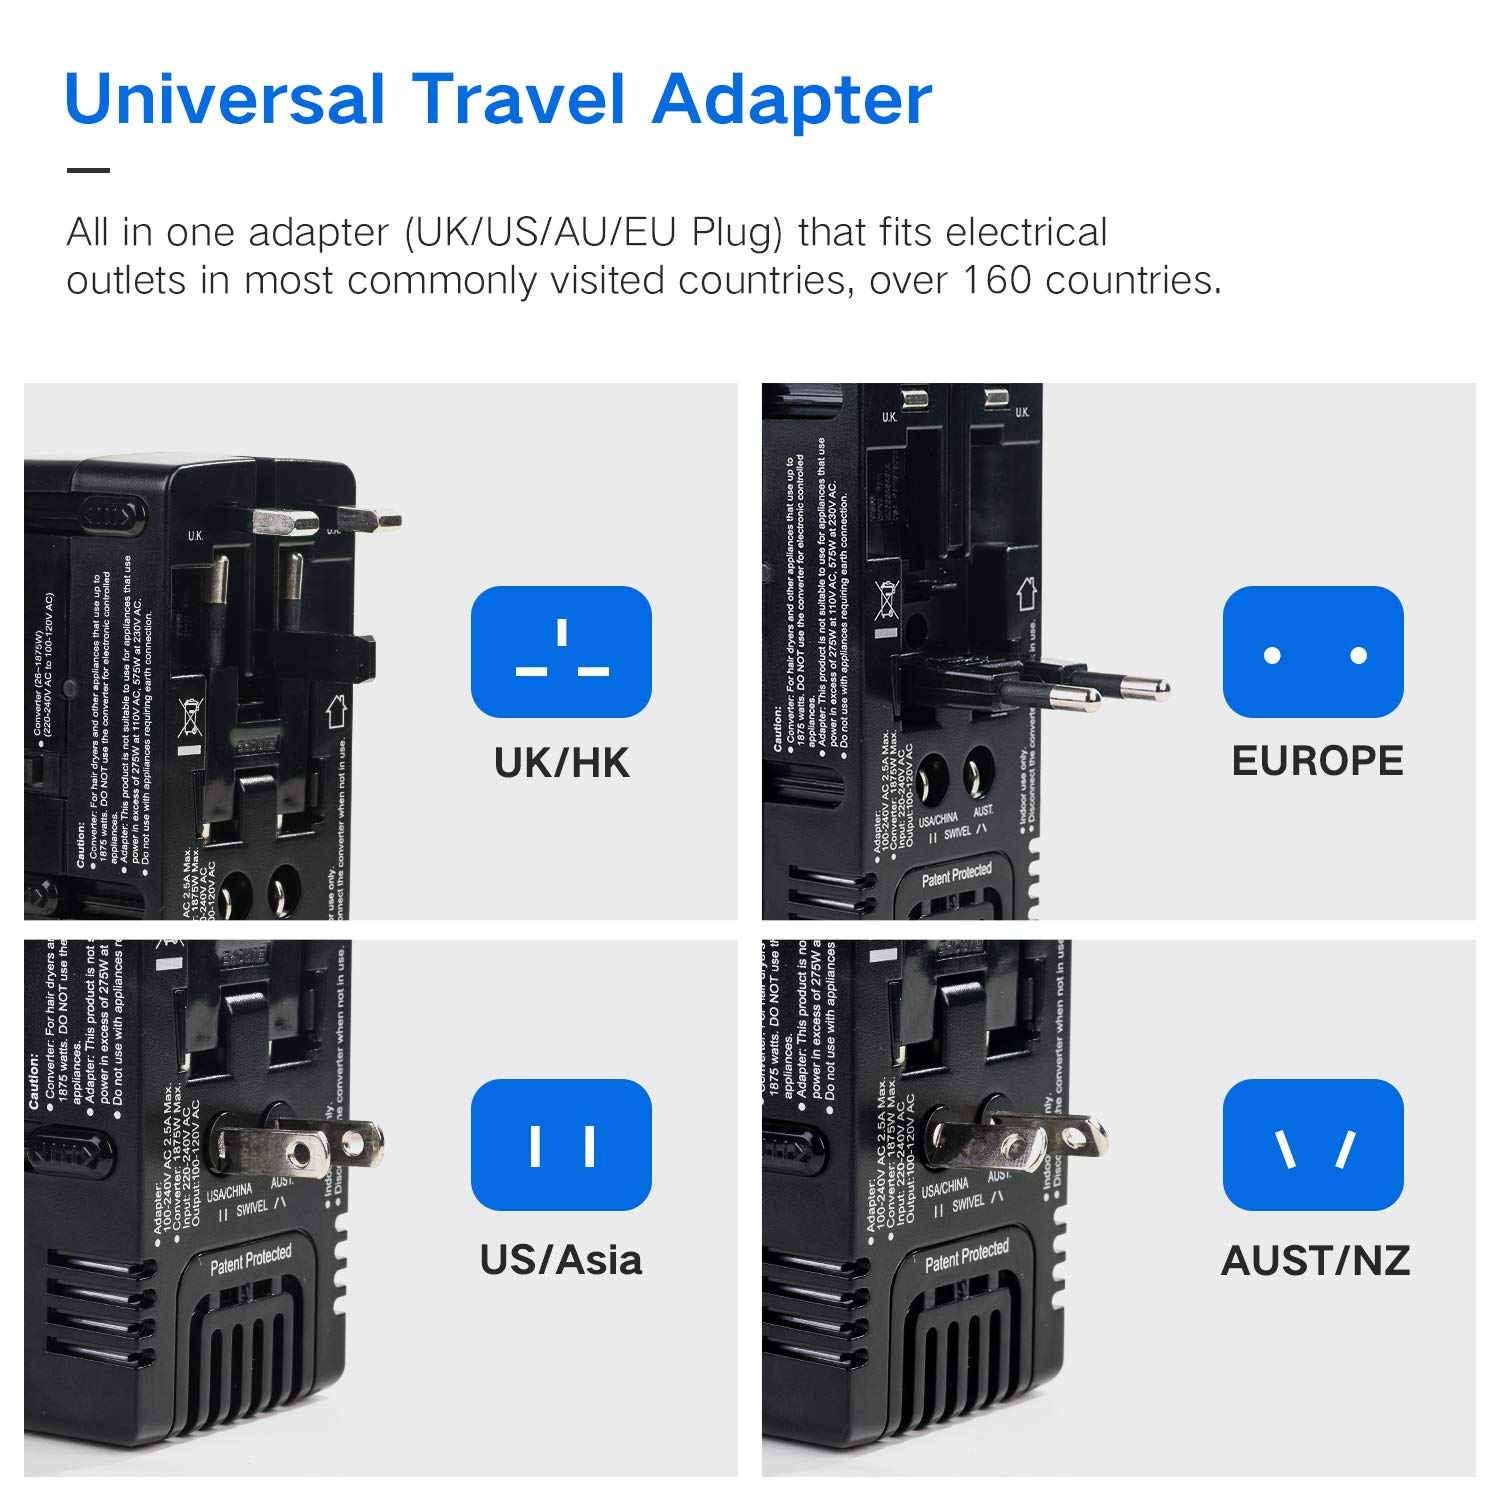 TryAce 2019 Upgraded All-in One 2000W Travel Adapter International Power Adapters Universal World Voltage Converter Set Down 220V to 110V for US to UK AU EU Worldwide Plug Over 200 Countries